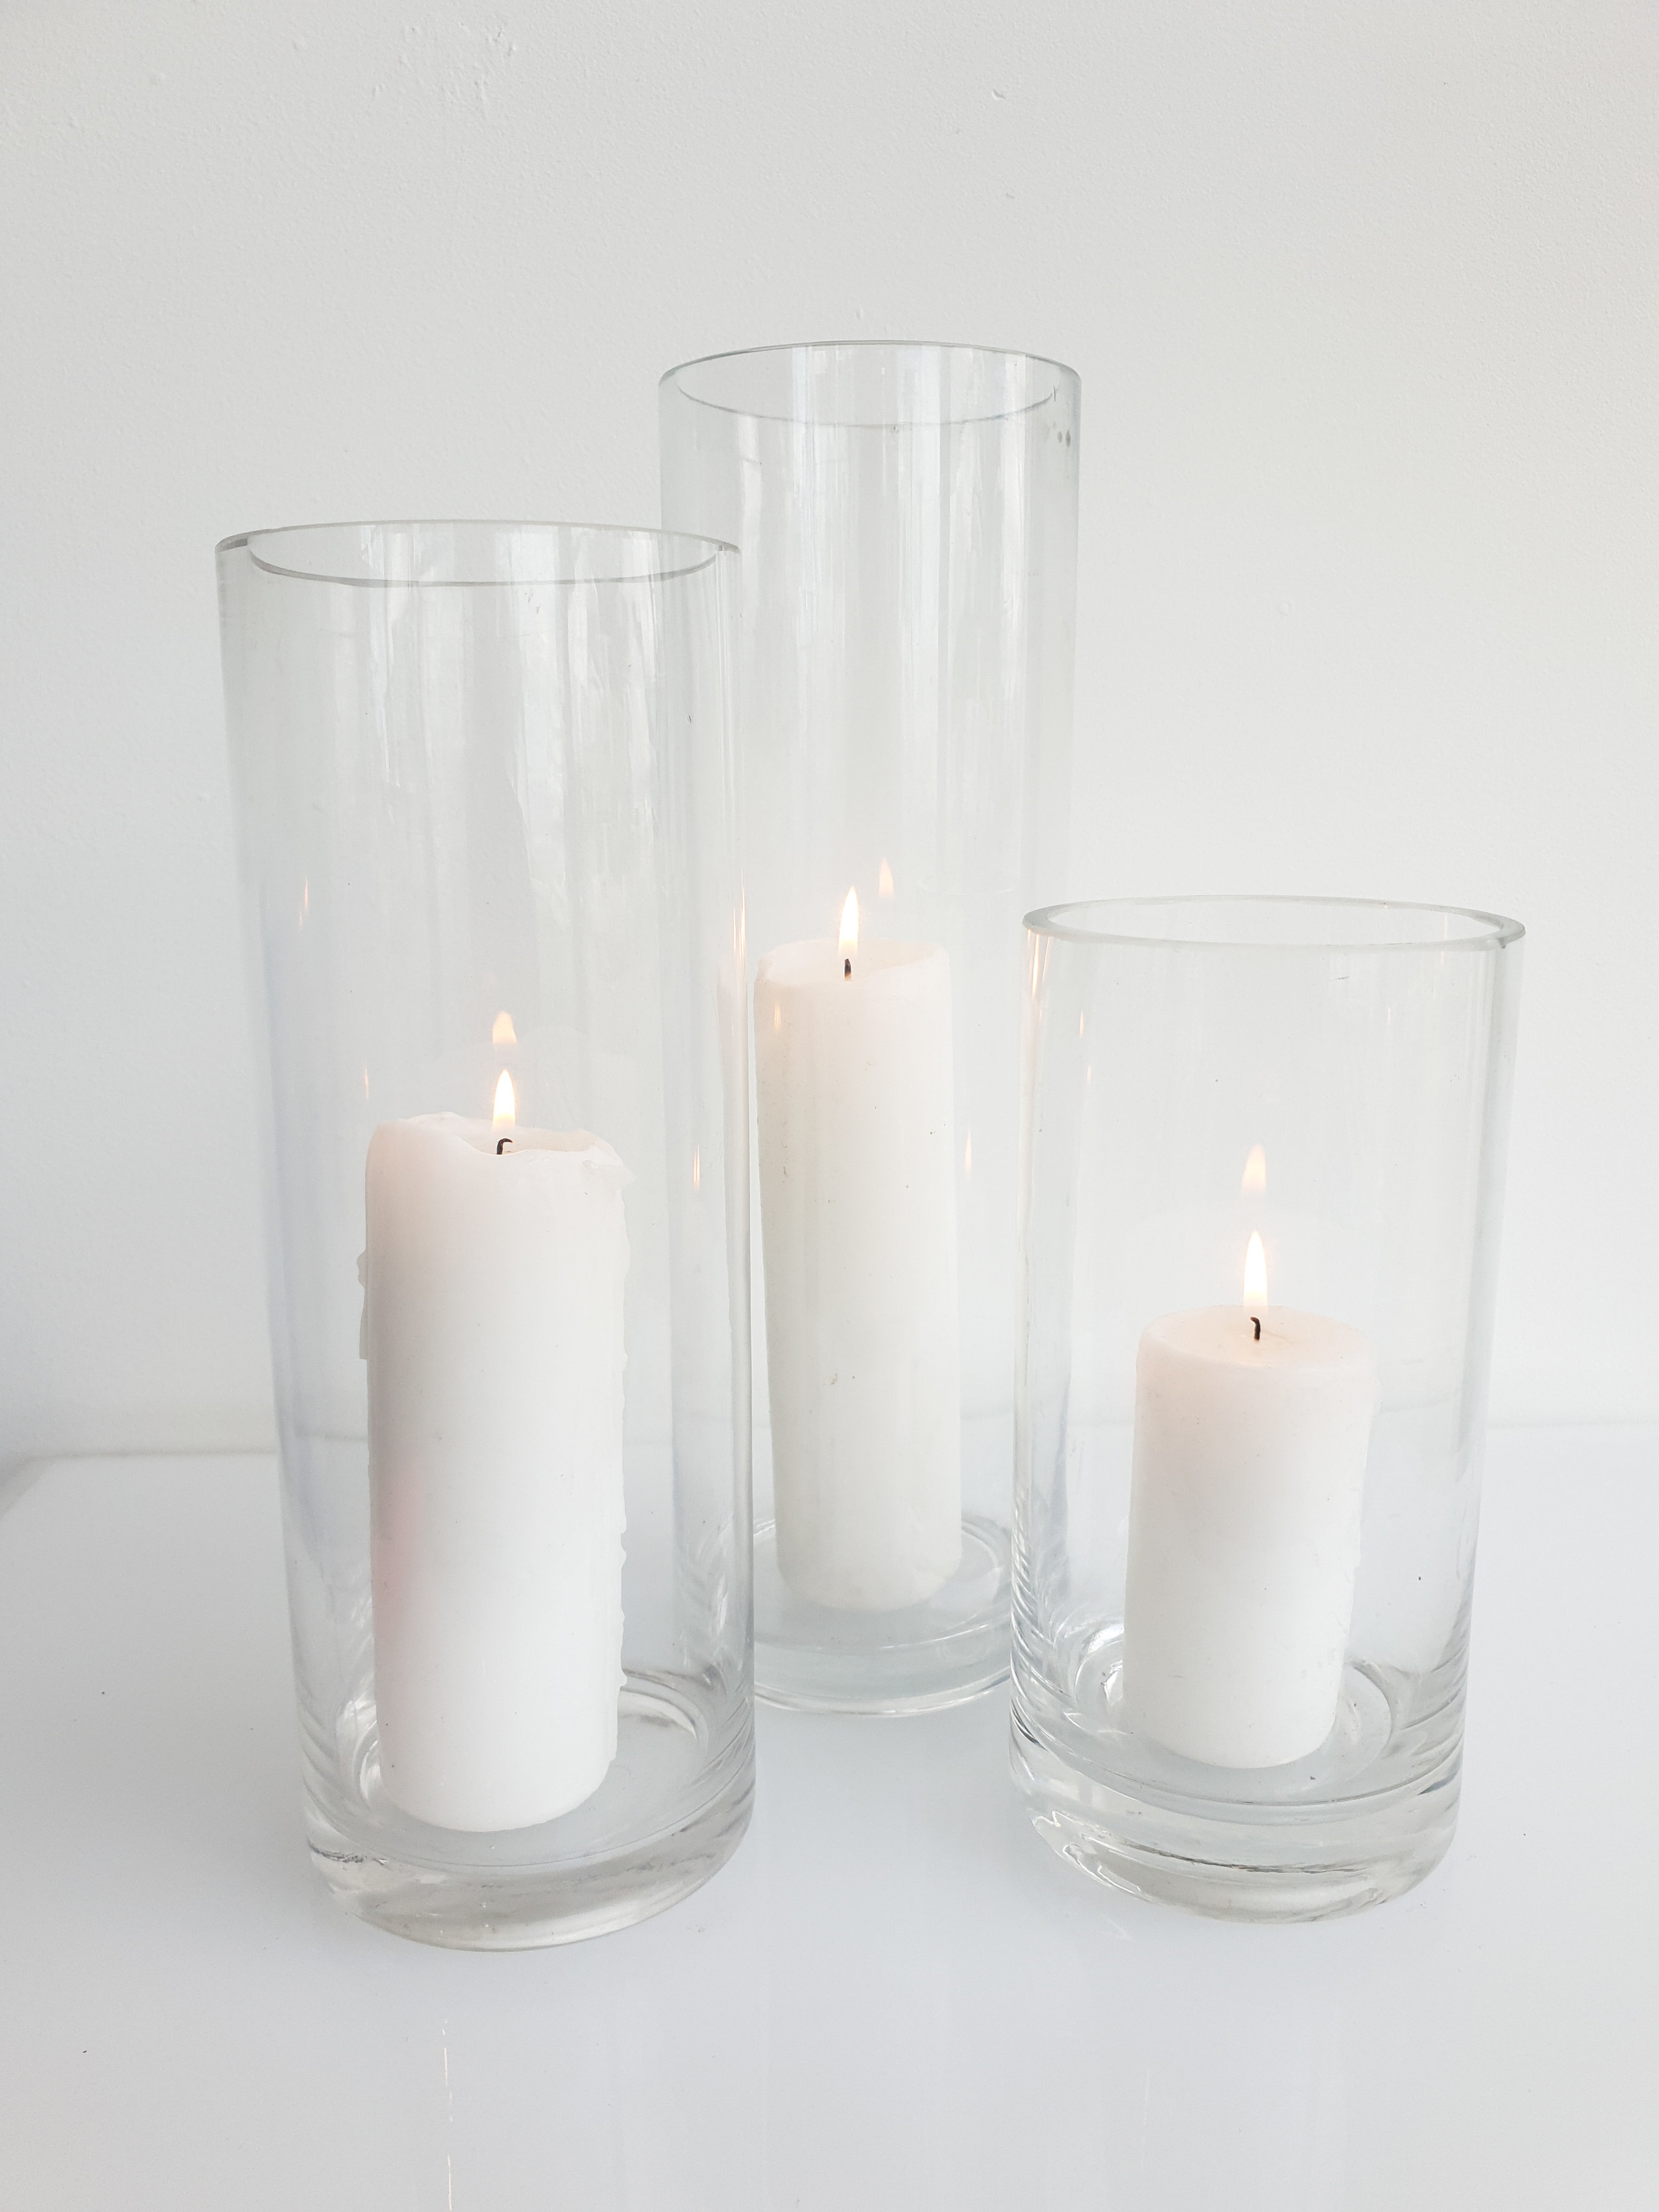 GLASS CYLINDER VASE WITH PILLAR CANDLE 20 CM H $10+GST 25 CM H $10+GST 30 CM H $12+GST 40 CM H $14+GST